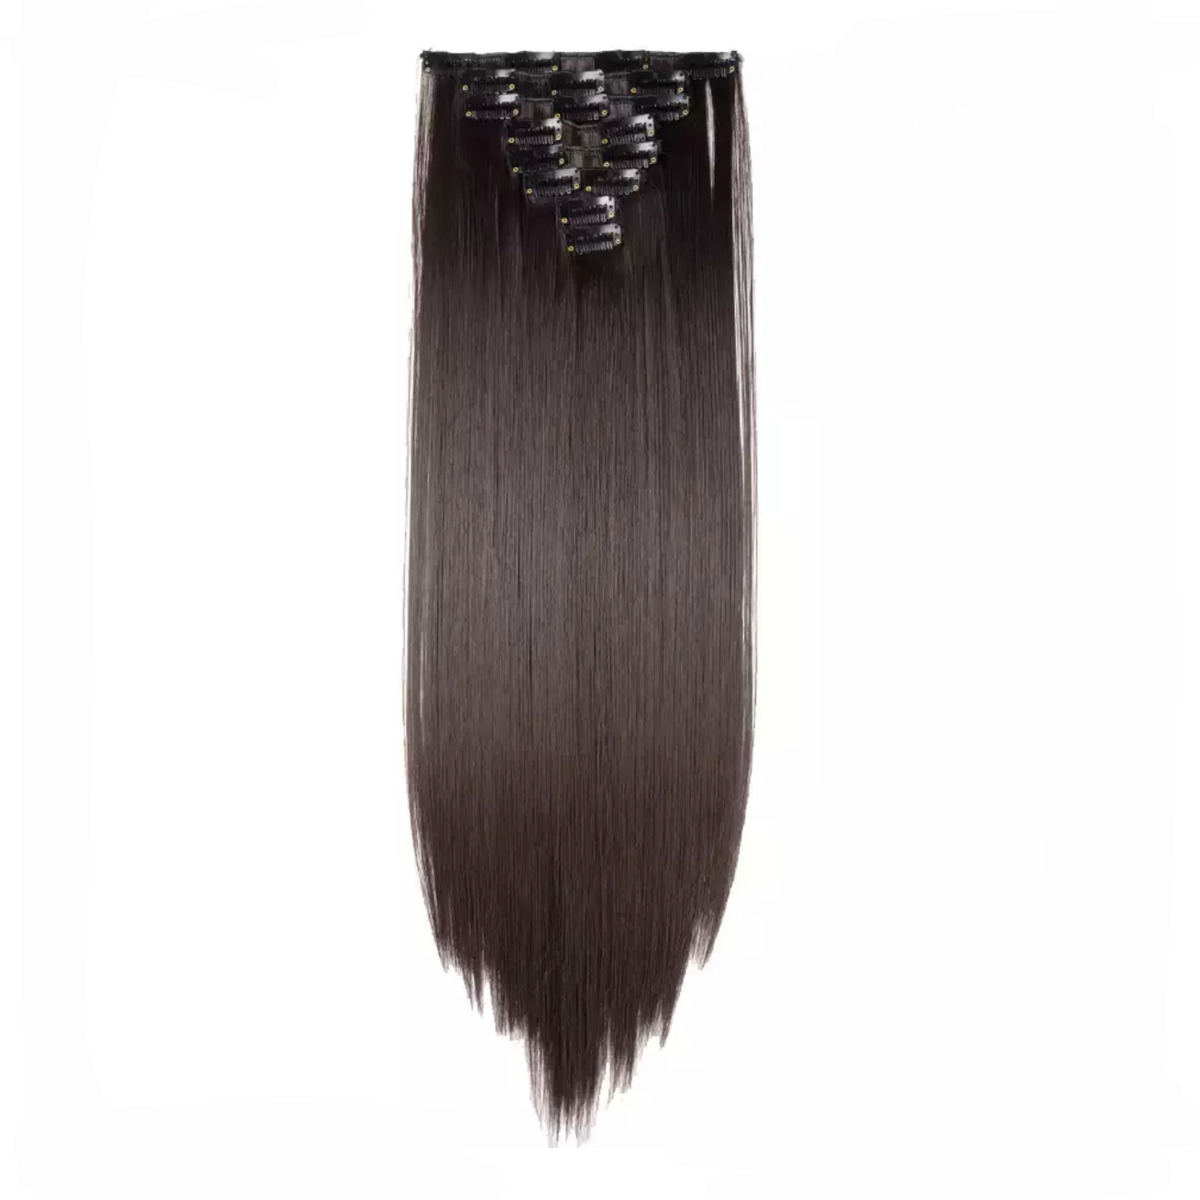 Clip In Hair Extensions Dark Brown Lexi Noel Beauty - lexinoelbeauty.com